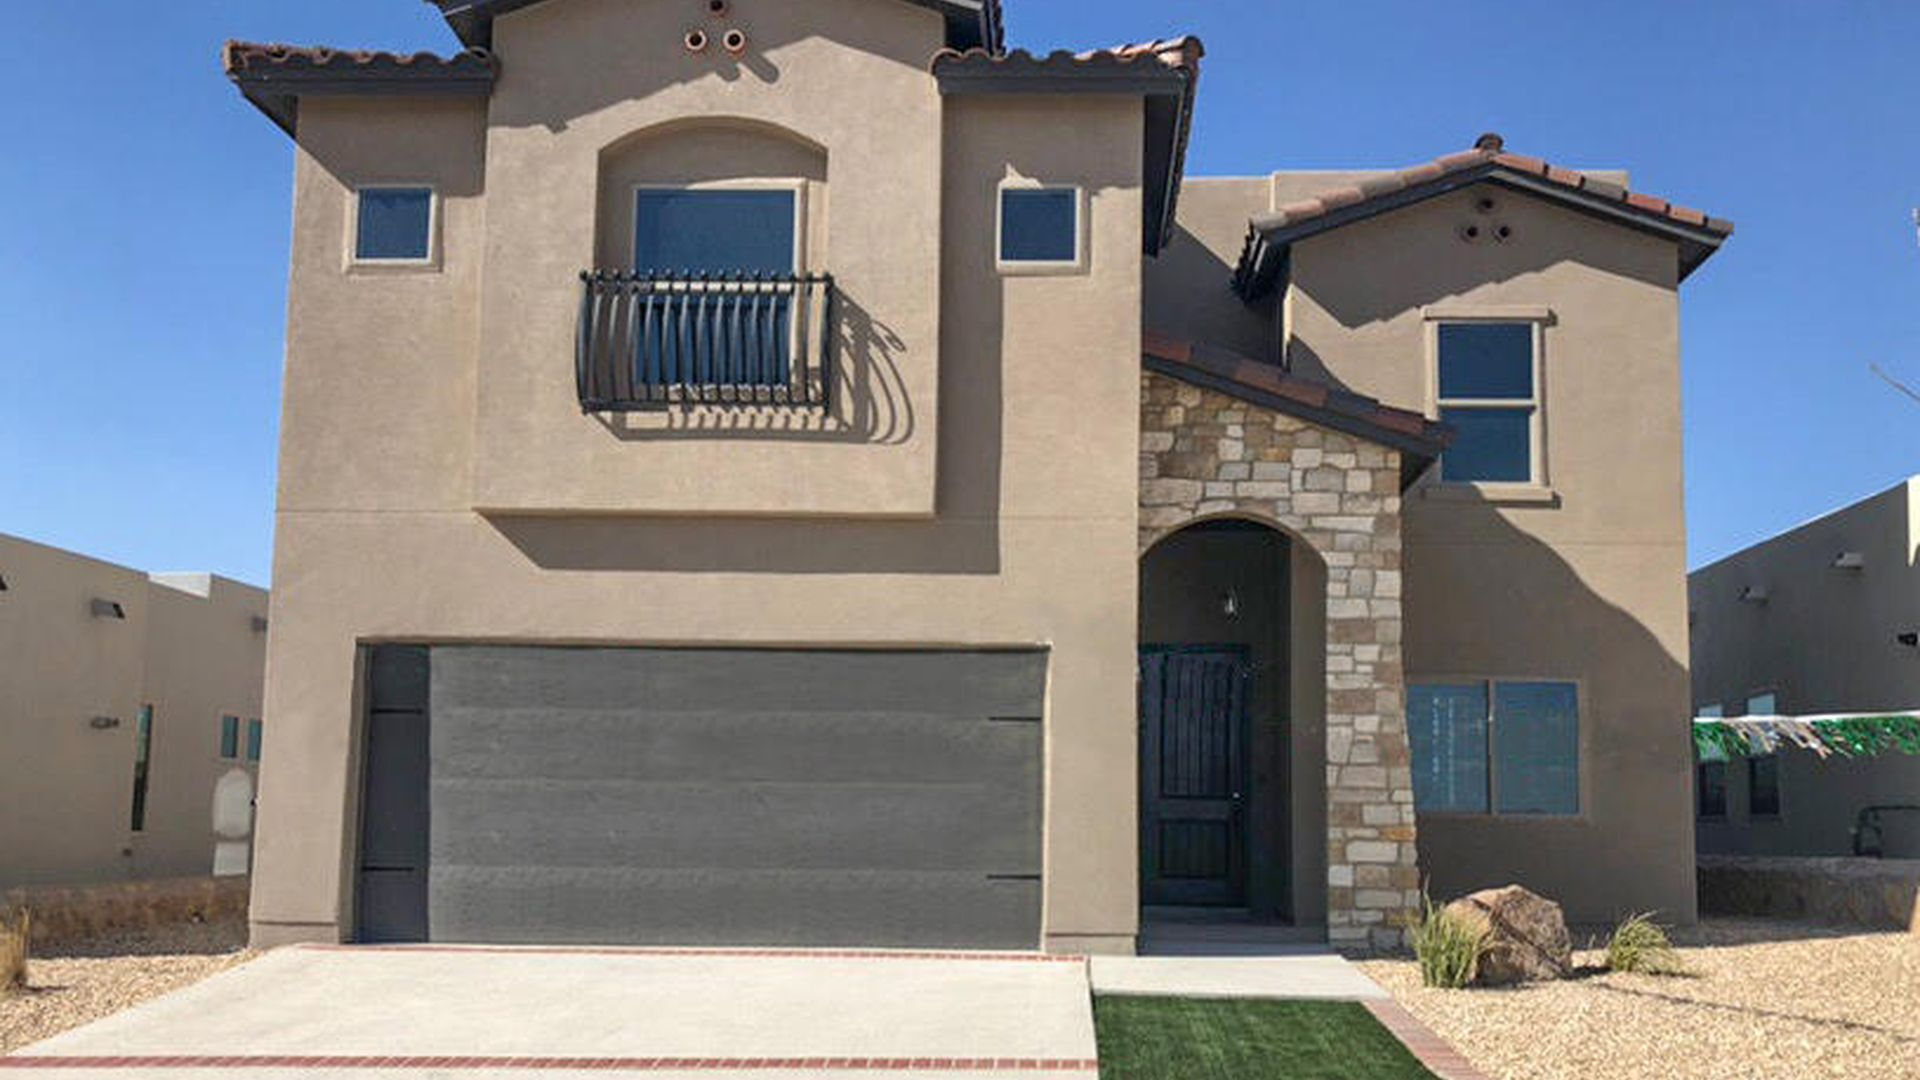 Palo Verde Homes Presents El Paso Real Estate Tx For Zillow